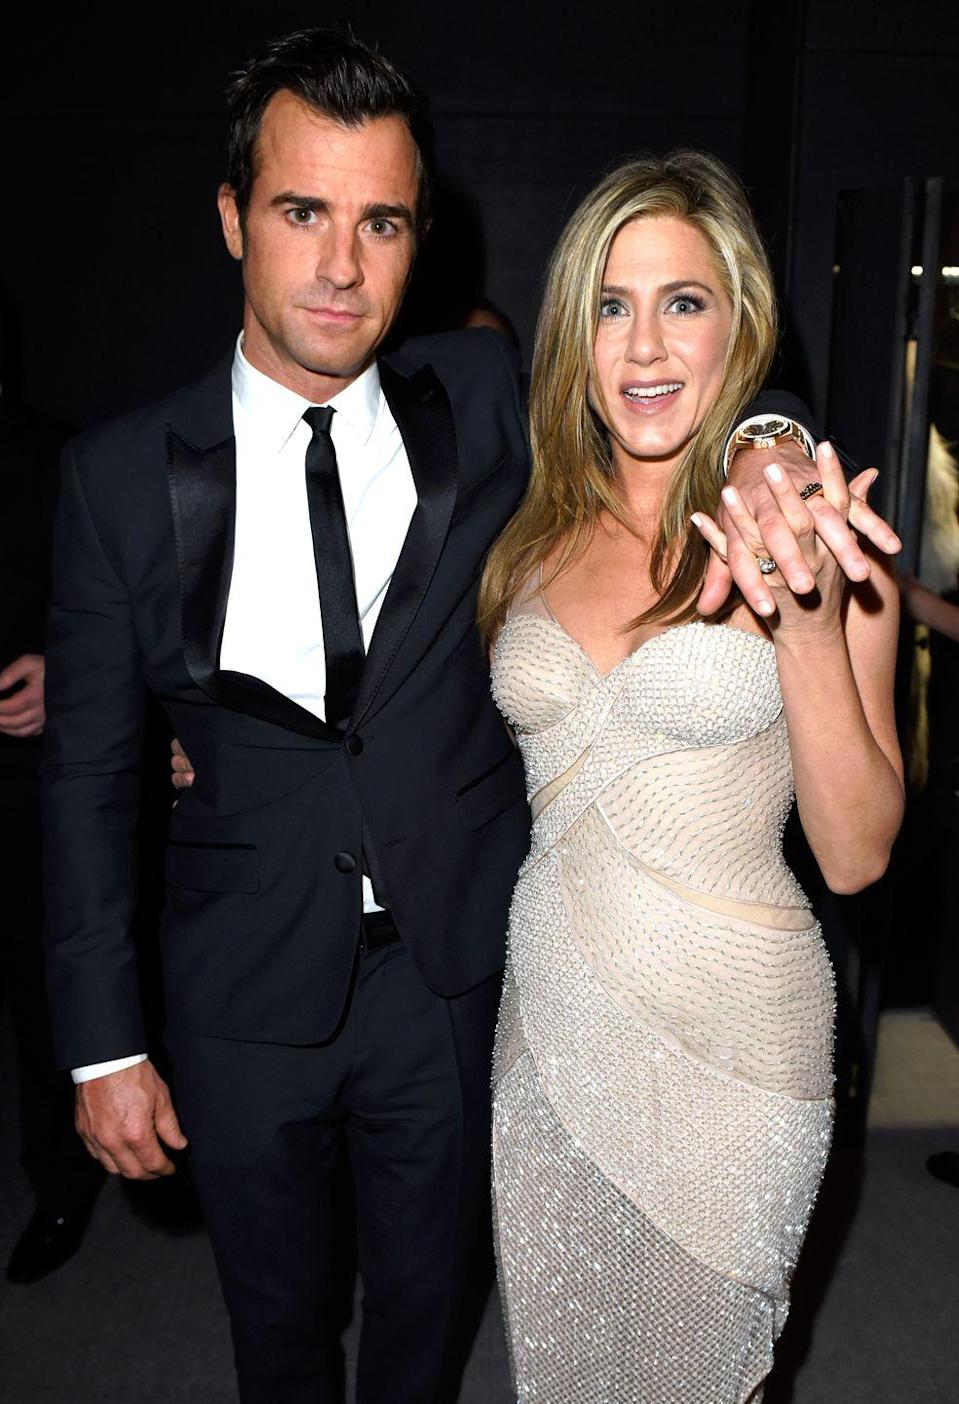 """<p>Jennifer Aniston and Justin Theroux <a href=""""http://people.com/celebrity/jennifer-aniston-and-justin-theroux-marry-in-bel-air-on-august-5/"""" rel=""""nofollow noopener"""" target=""""_blank"""" data-ylk=""""slk:tie the knot"""" class=""""link rapid-noclick-resp"""">tie the knot</a> (or <a href=""""https://www.marieclaire.com/celebrity/a18217917/jennifer-aniston-justin-theroux-not-legally-married/"""" rel=""""nofollow noopener"""" target=""""_blank"""" data-ylk=""""slk:at least have a ceremony"""" class=""""link rapid-noclick-resp"""">at least have a ceremony</a>).</p>"""